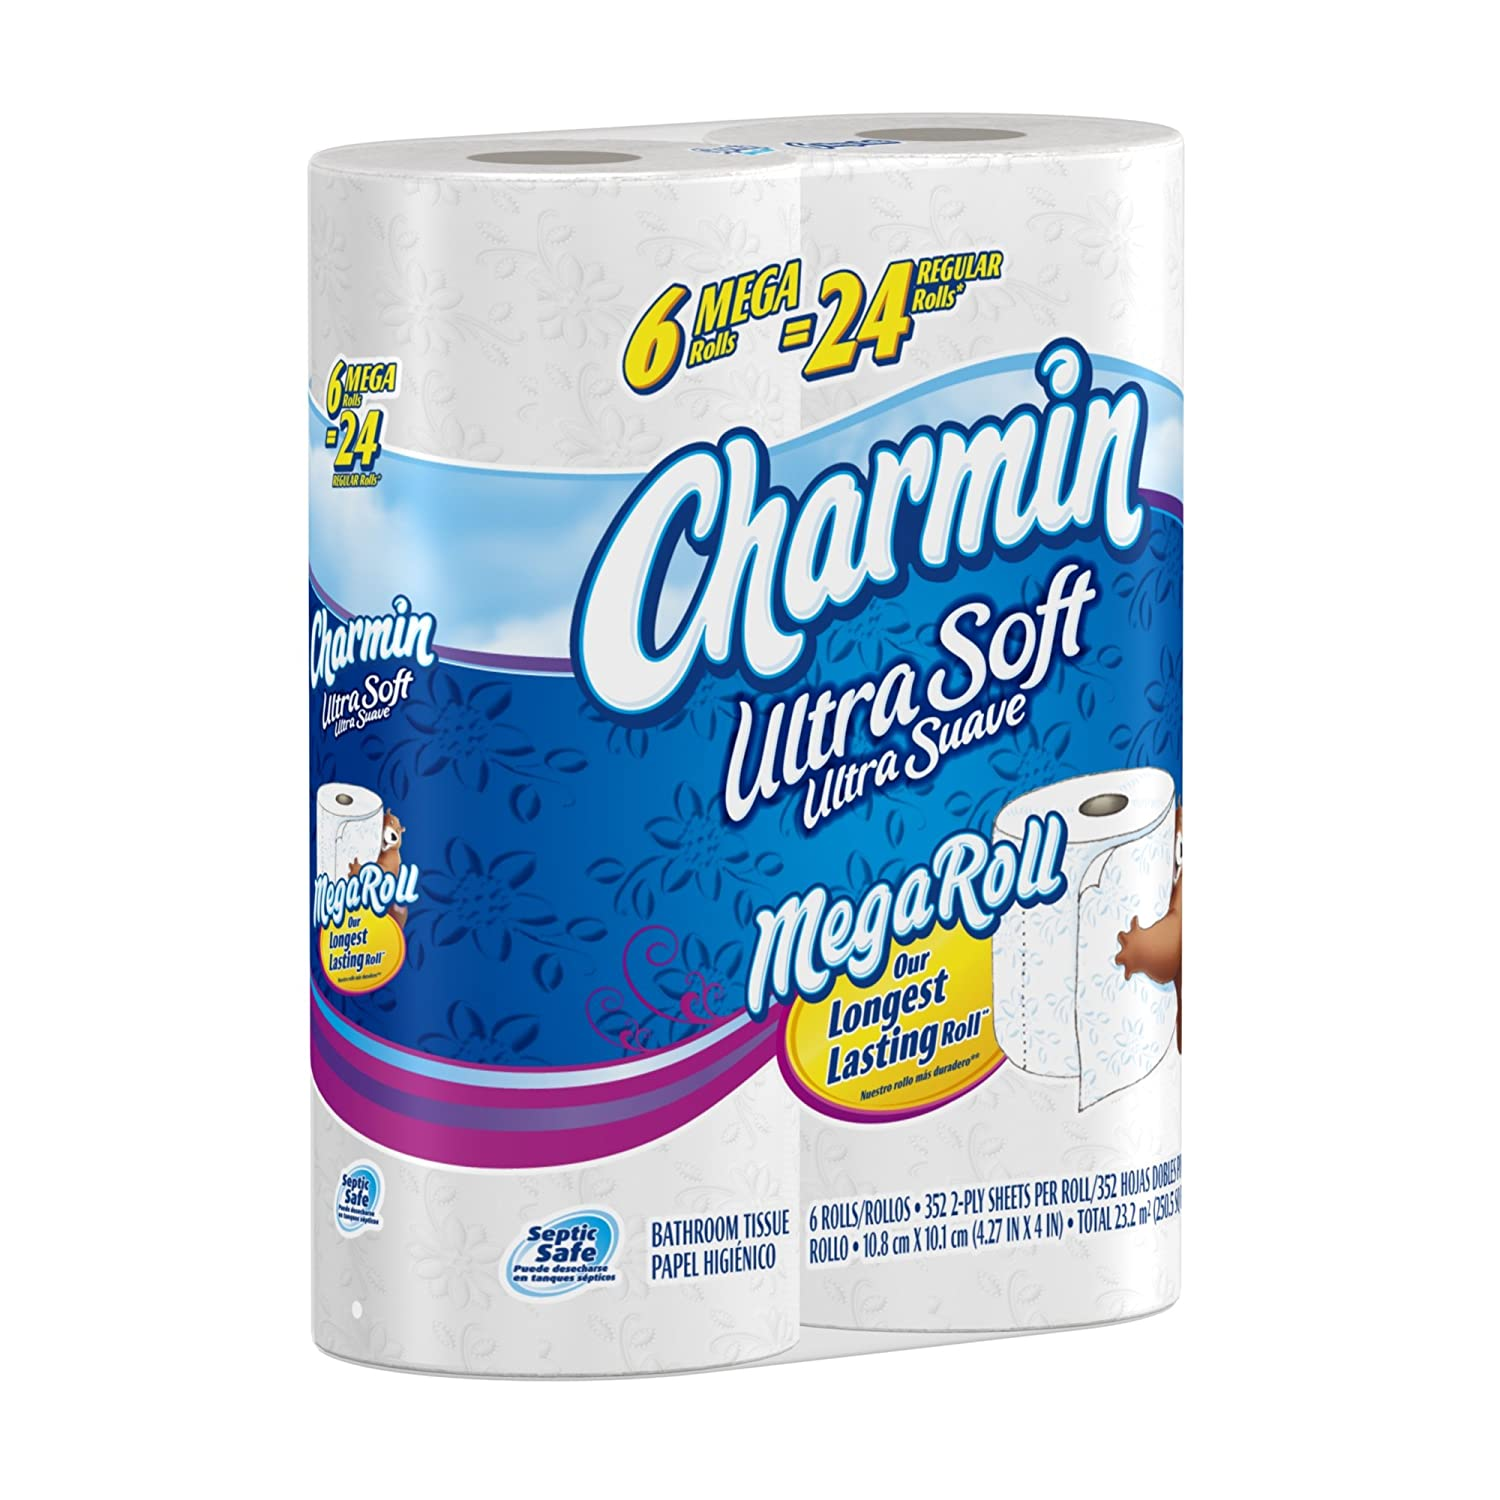 toilet paper cheap Custom printed tissue paper choose from a wide array of ink colors to personalize any kraft, white or colored tissue paper with your company name and logo add distinction to your packaging with superior quality tissue.